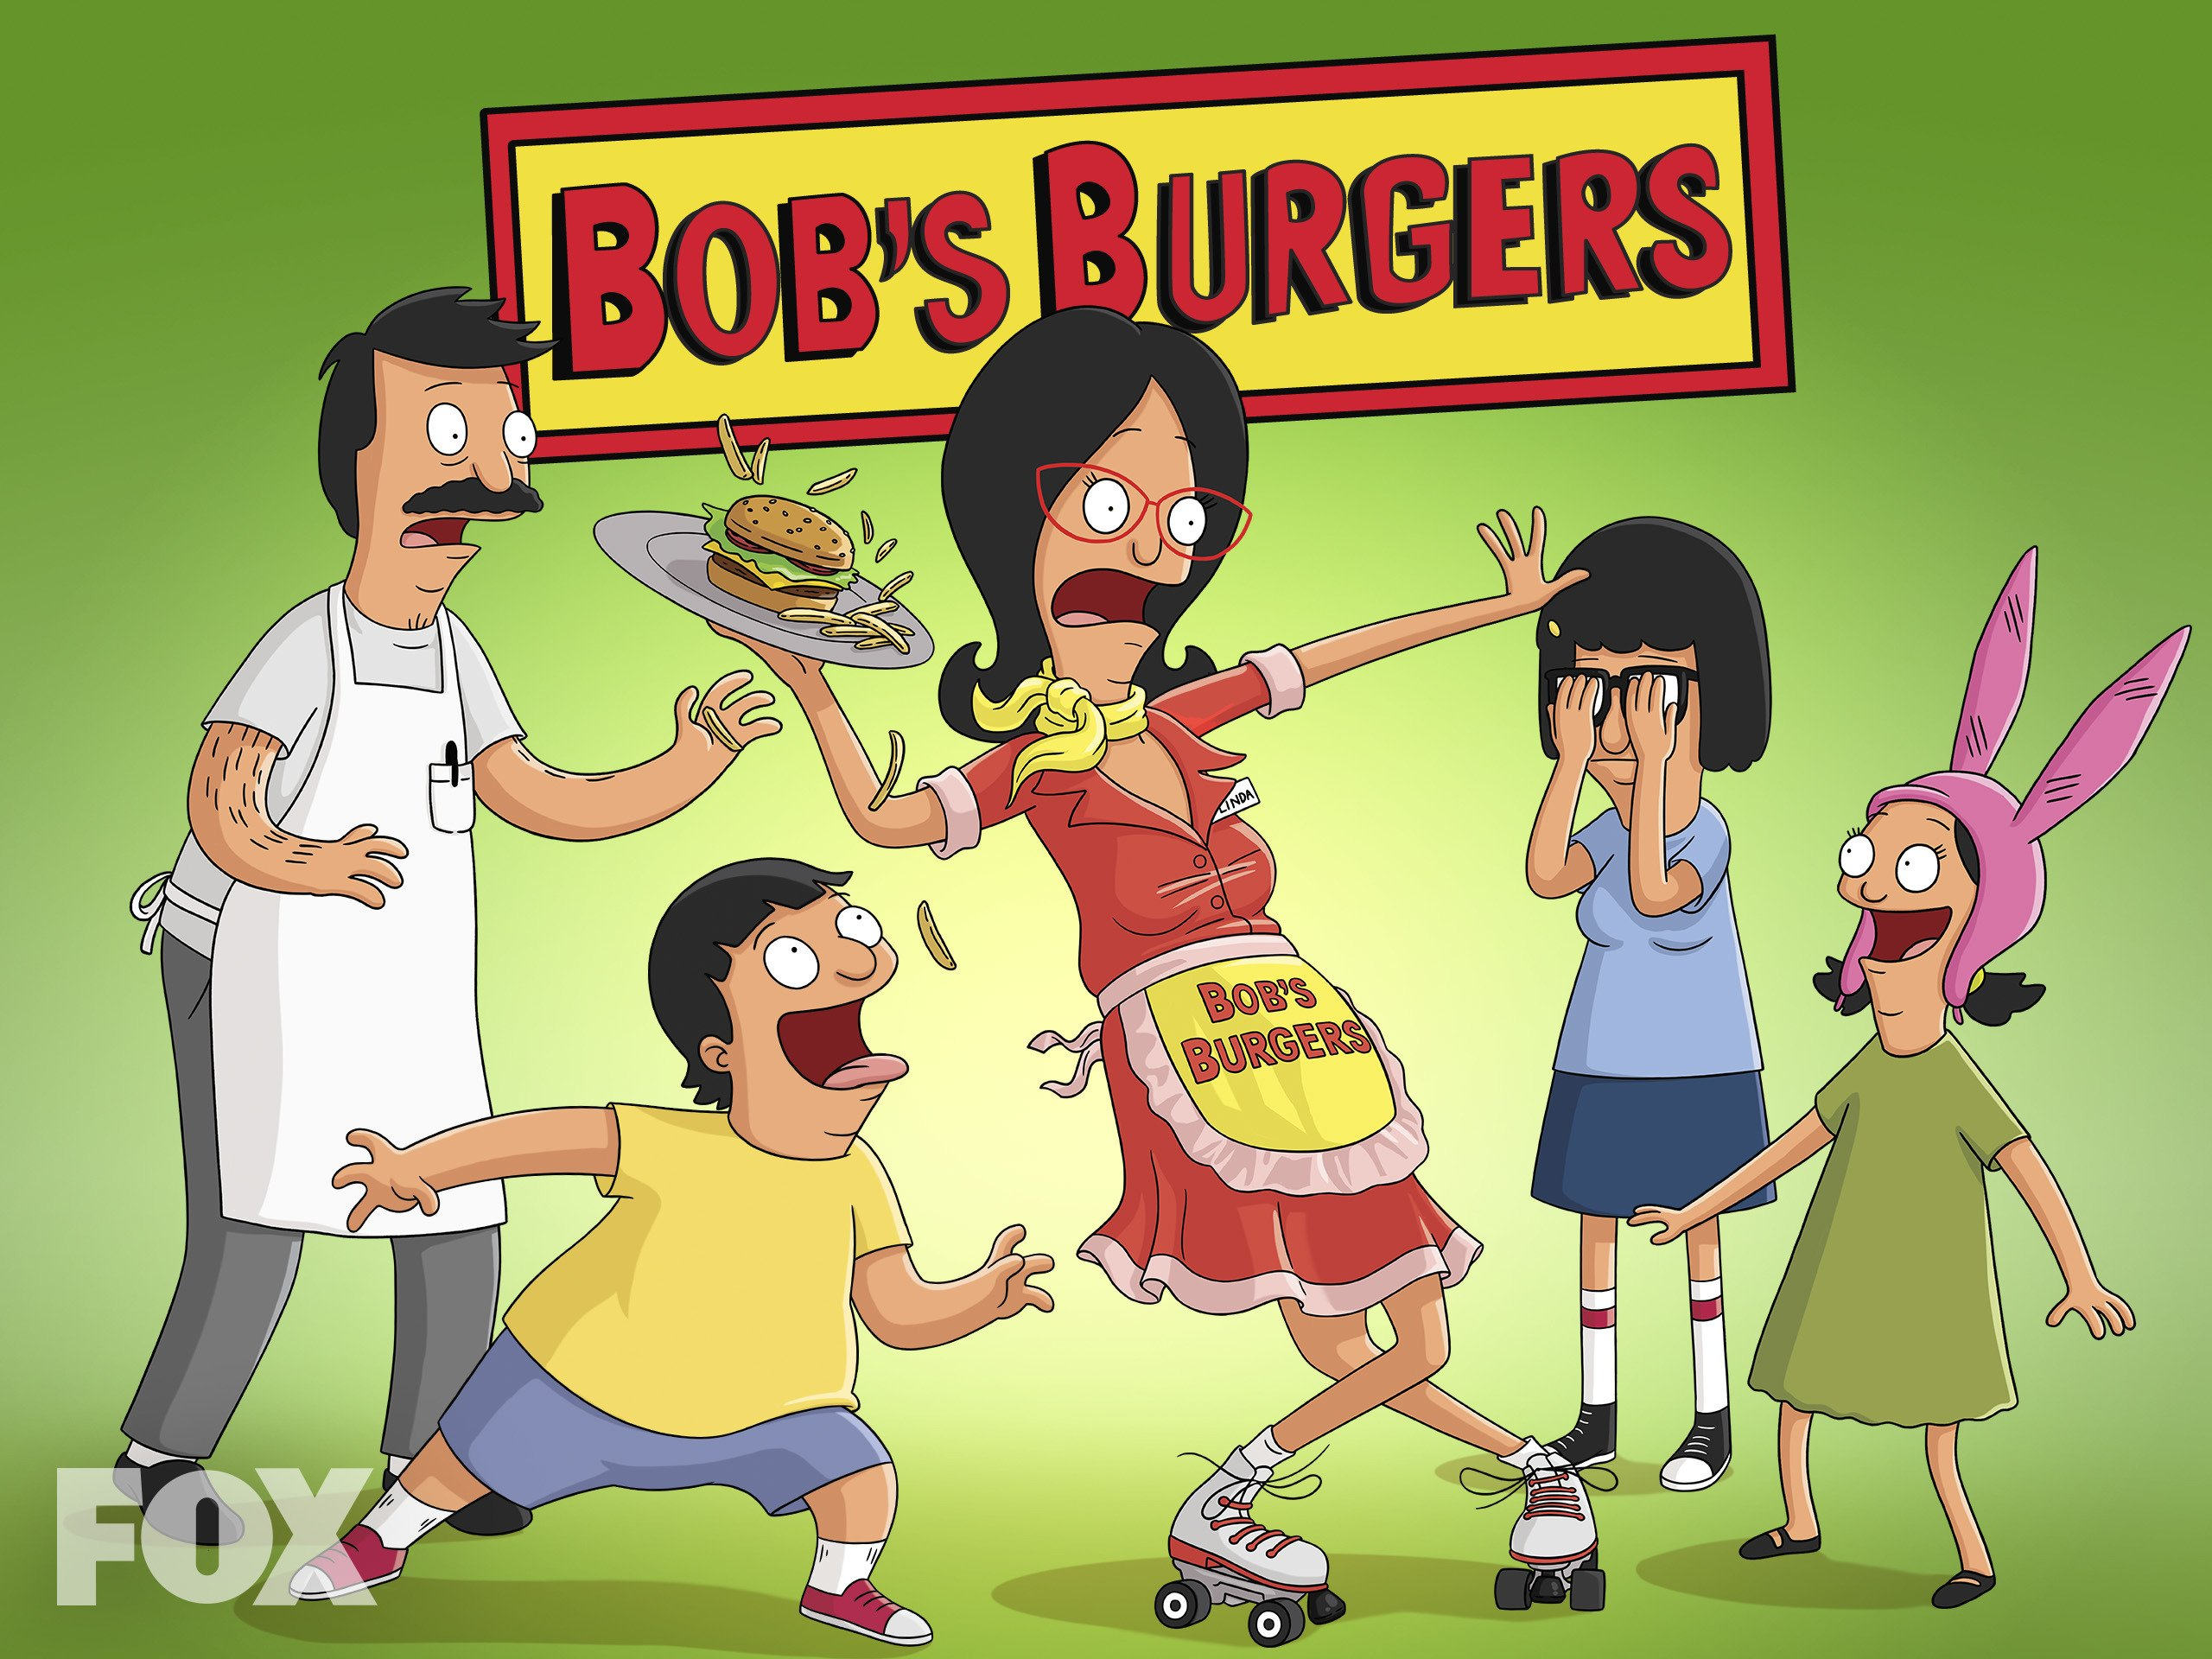 bobs burgers season 8 episode 6 fox